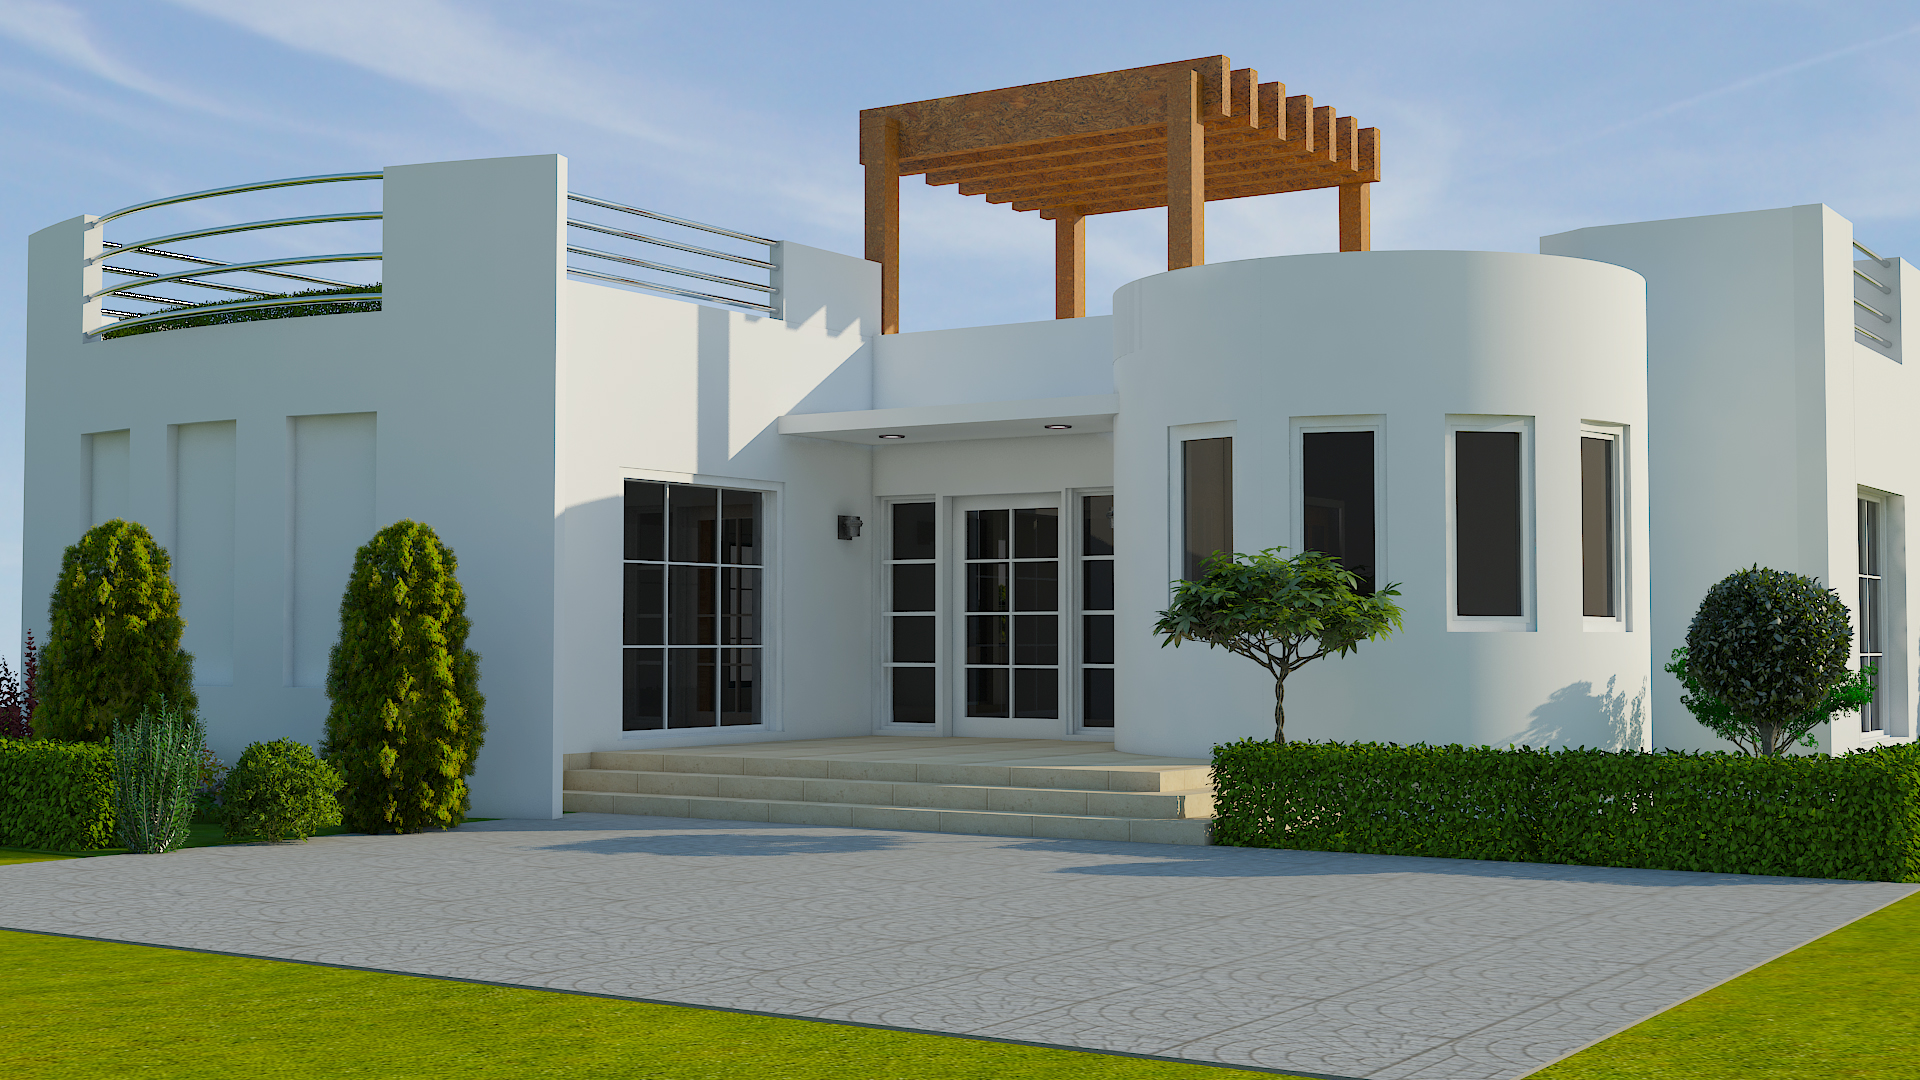 3d Home Sunconomy To Develop 3d Printed Concrete Homes In Texas 3d